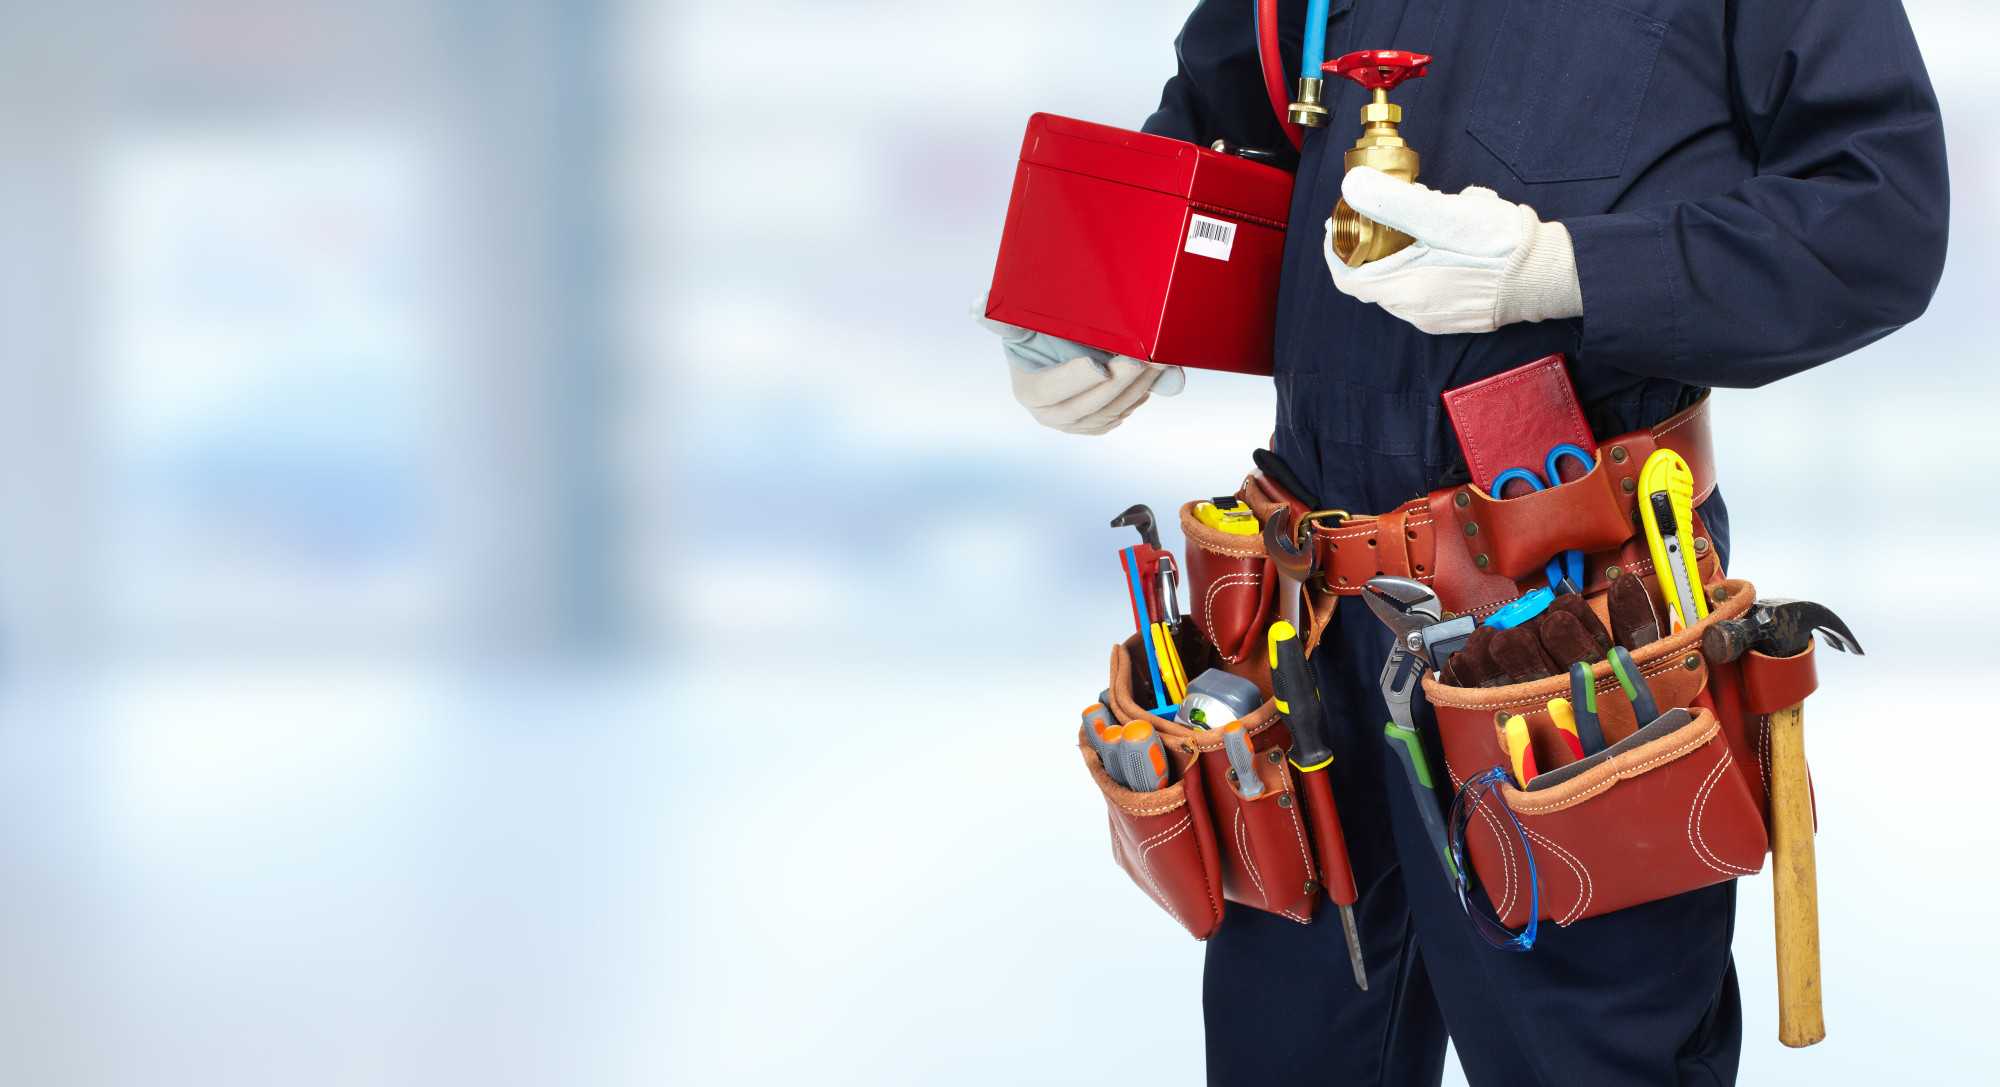 Preparing Your Plumbing: The Ultimate Plumbing Checklist to Complete Before Going on Vacation